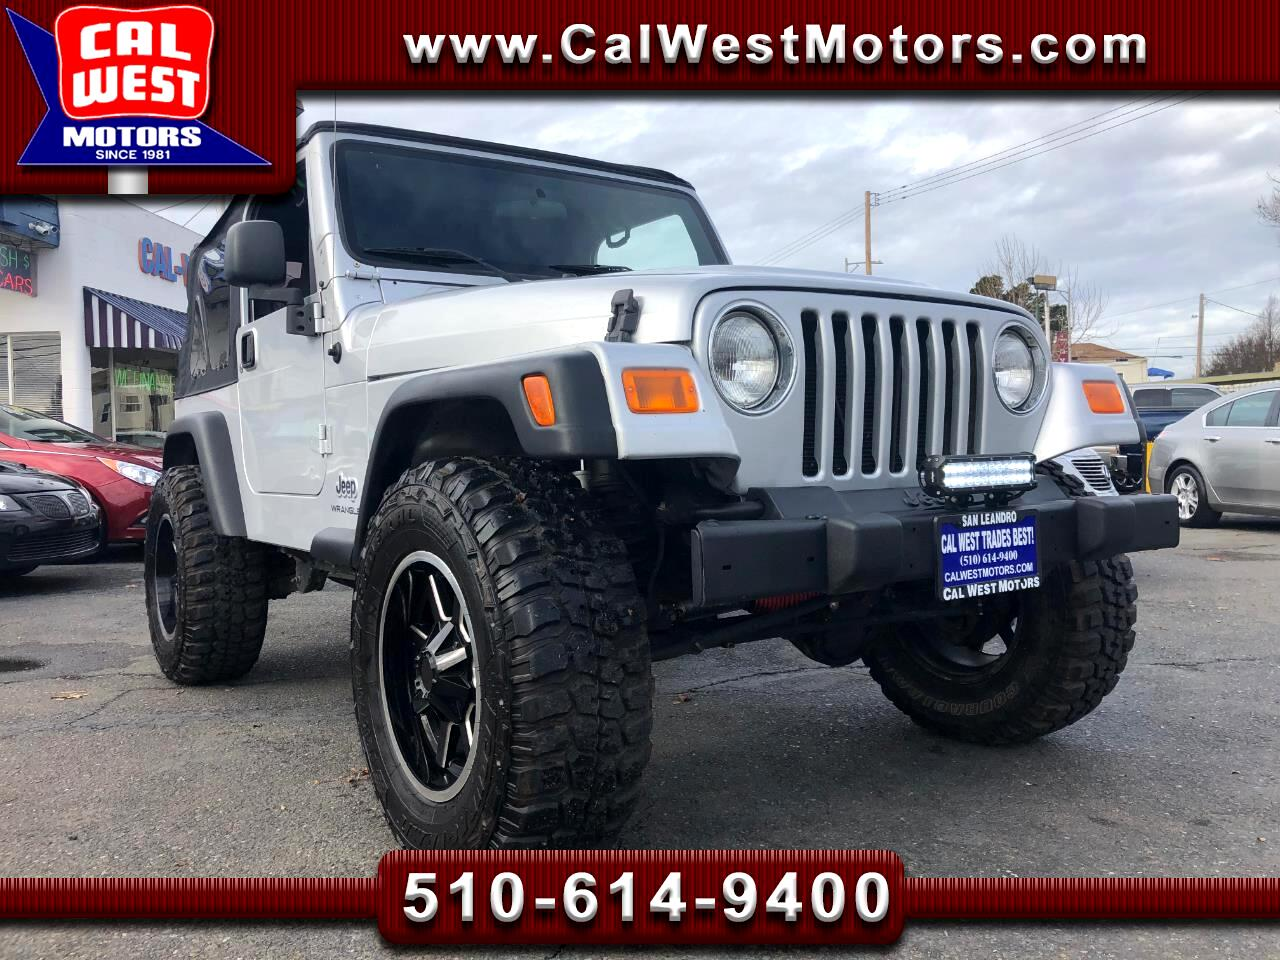 2006 Jeep Wrangler I-6 4X4 6-Speed AC Only59K VeryClean WellMntnd